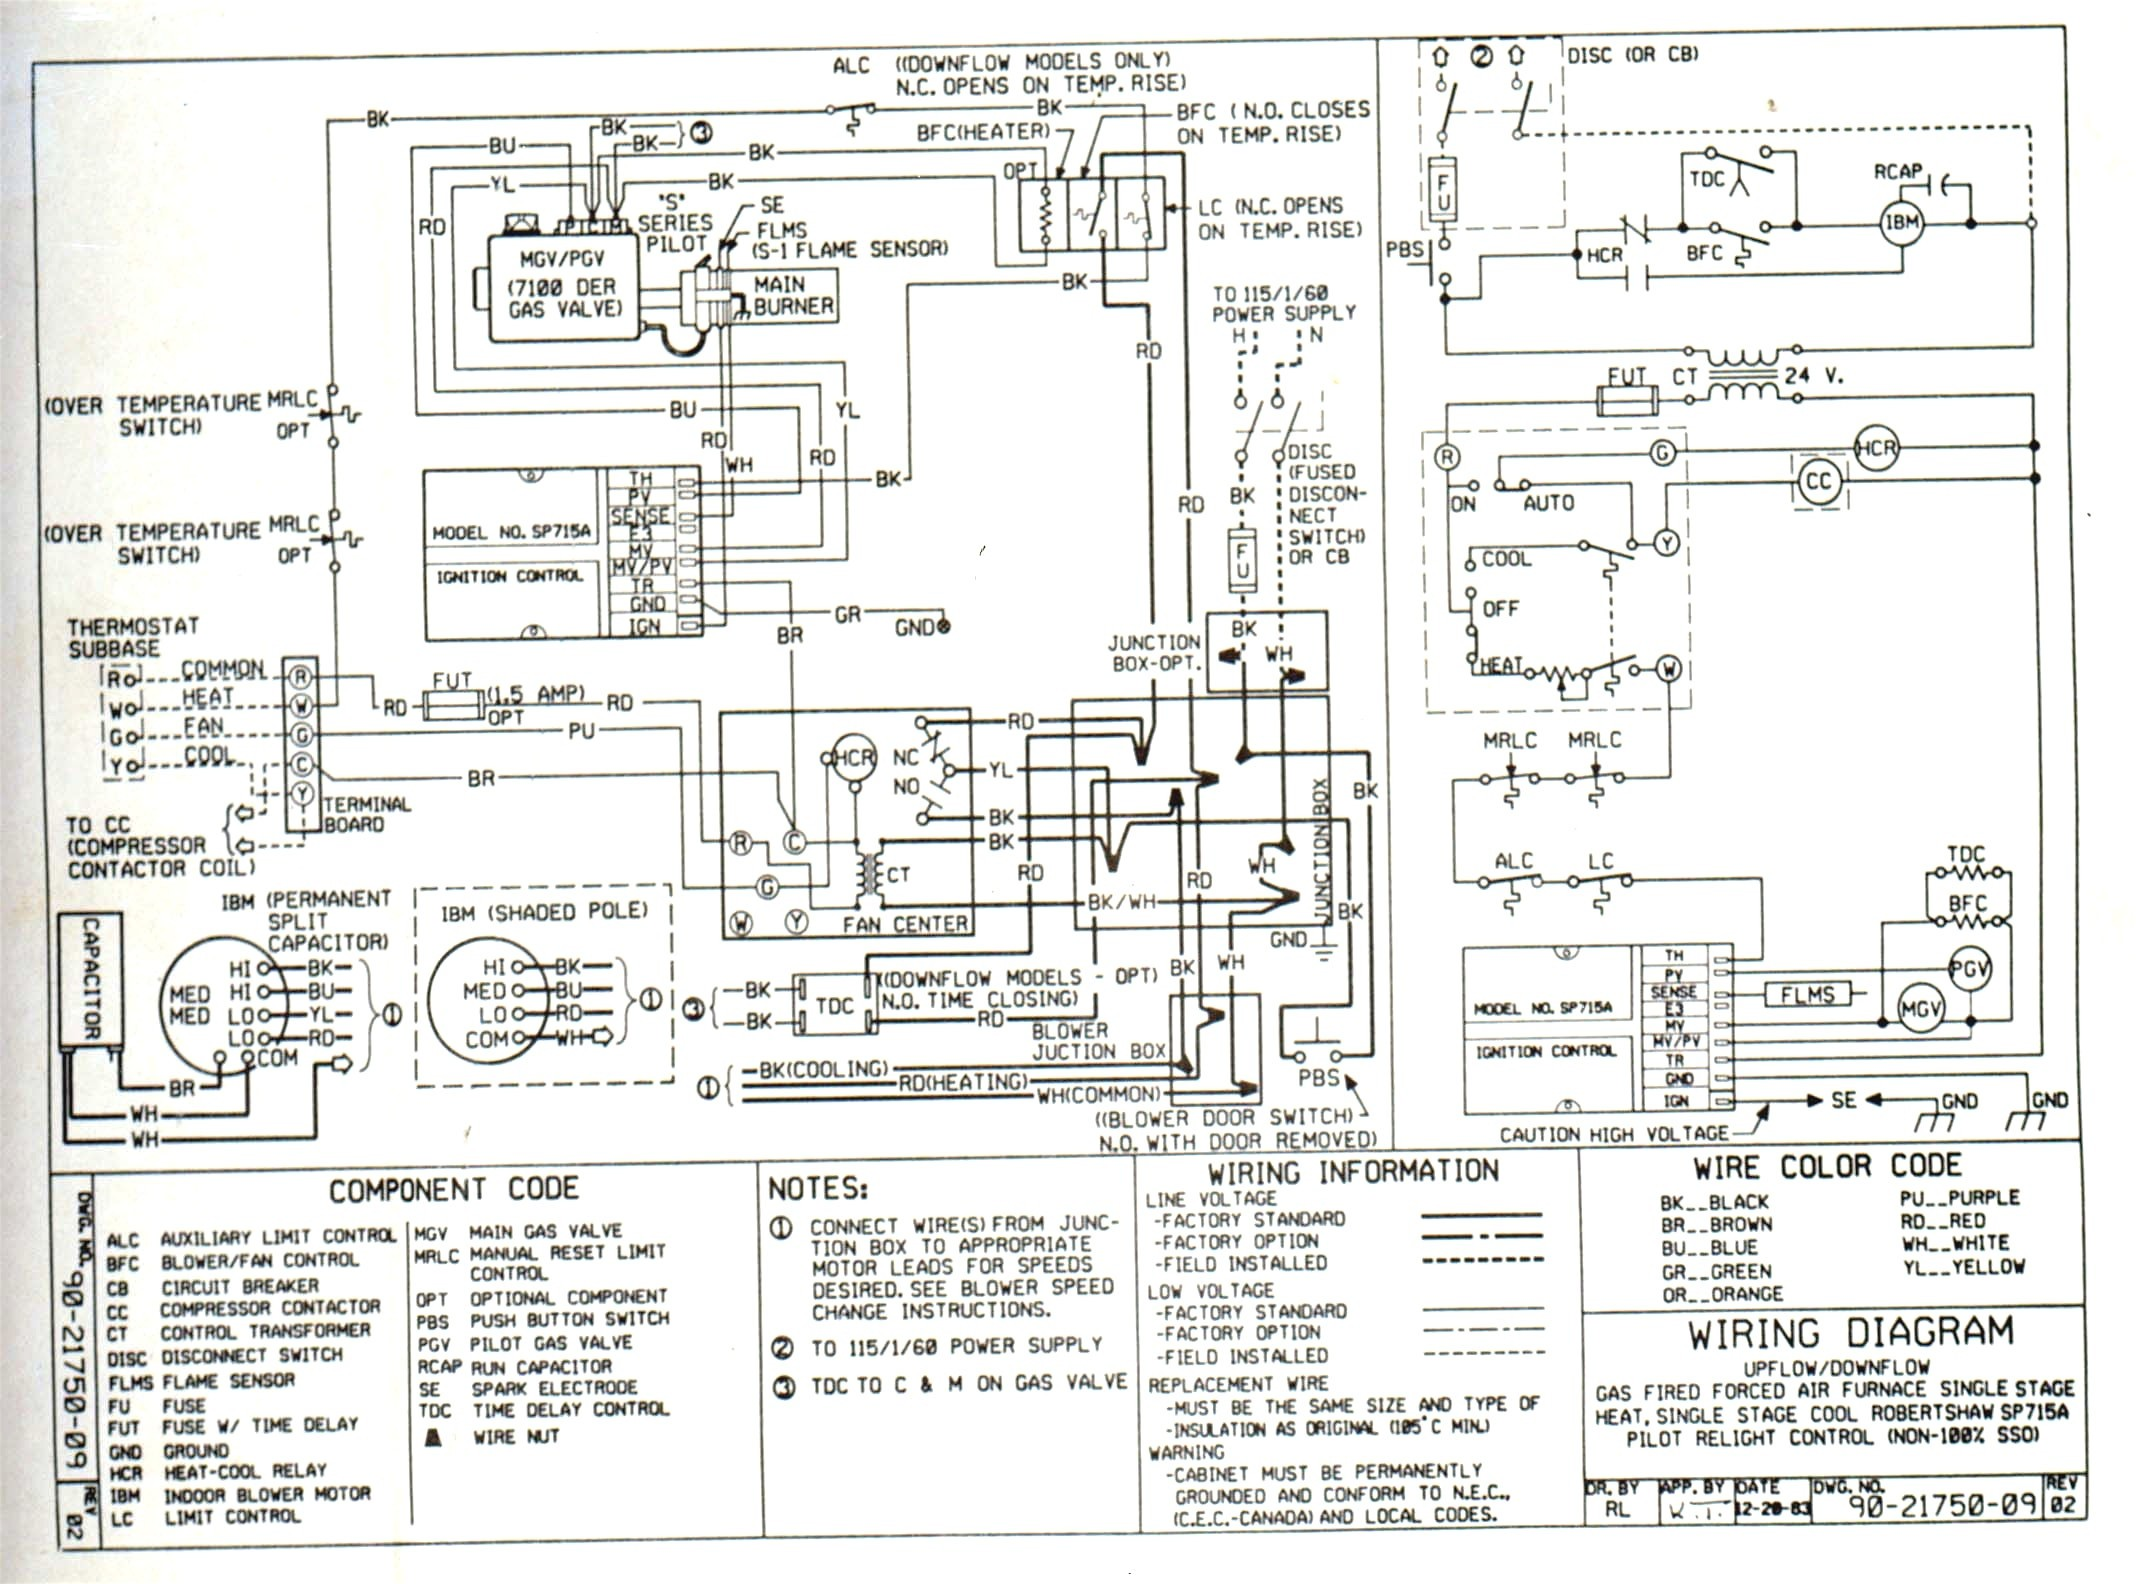 John Deere Ignition Switch Wiring Schematics 4 X 2